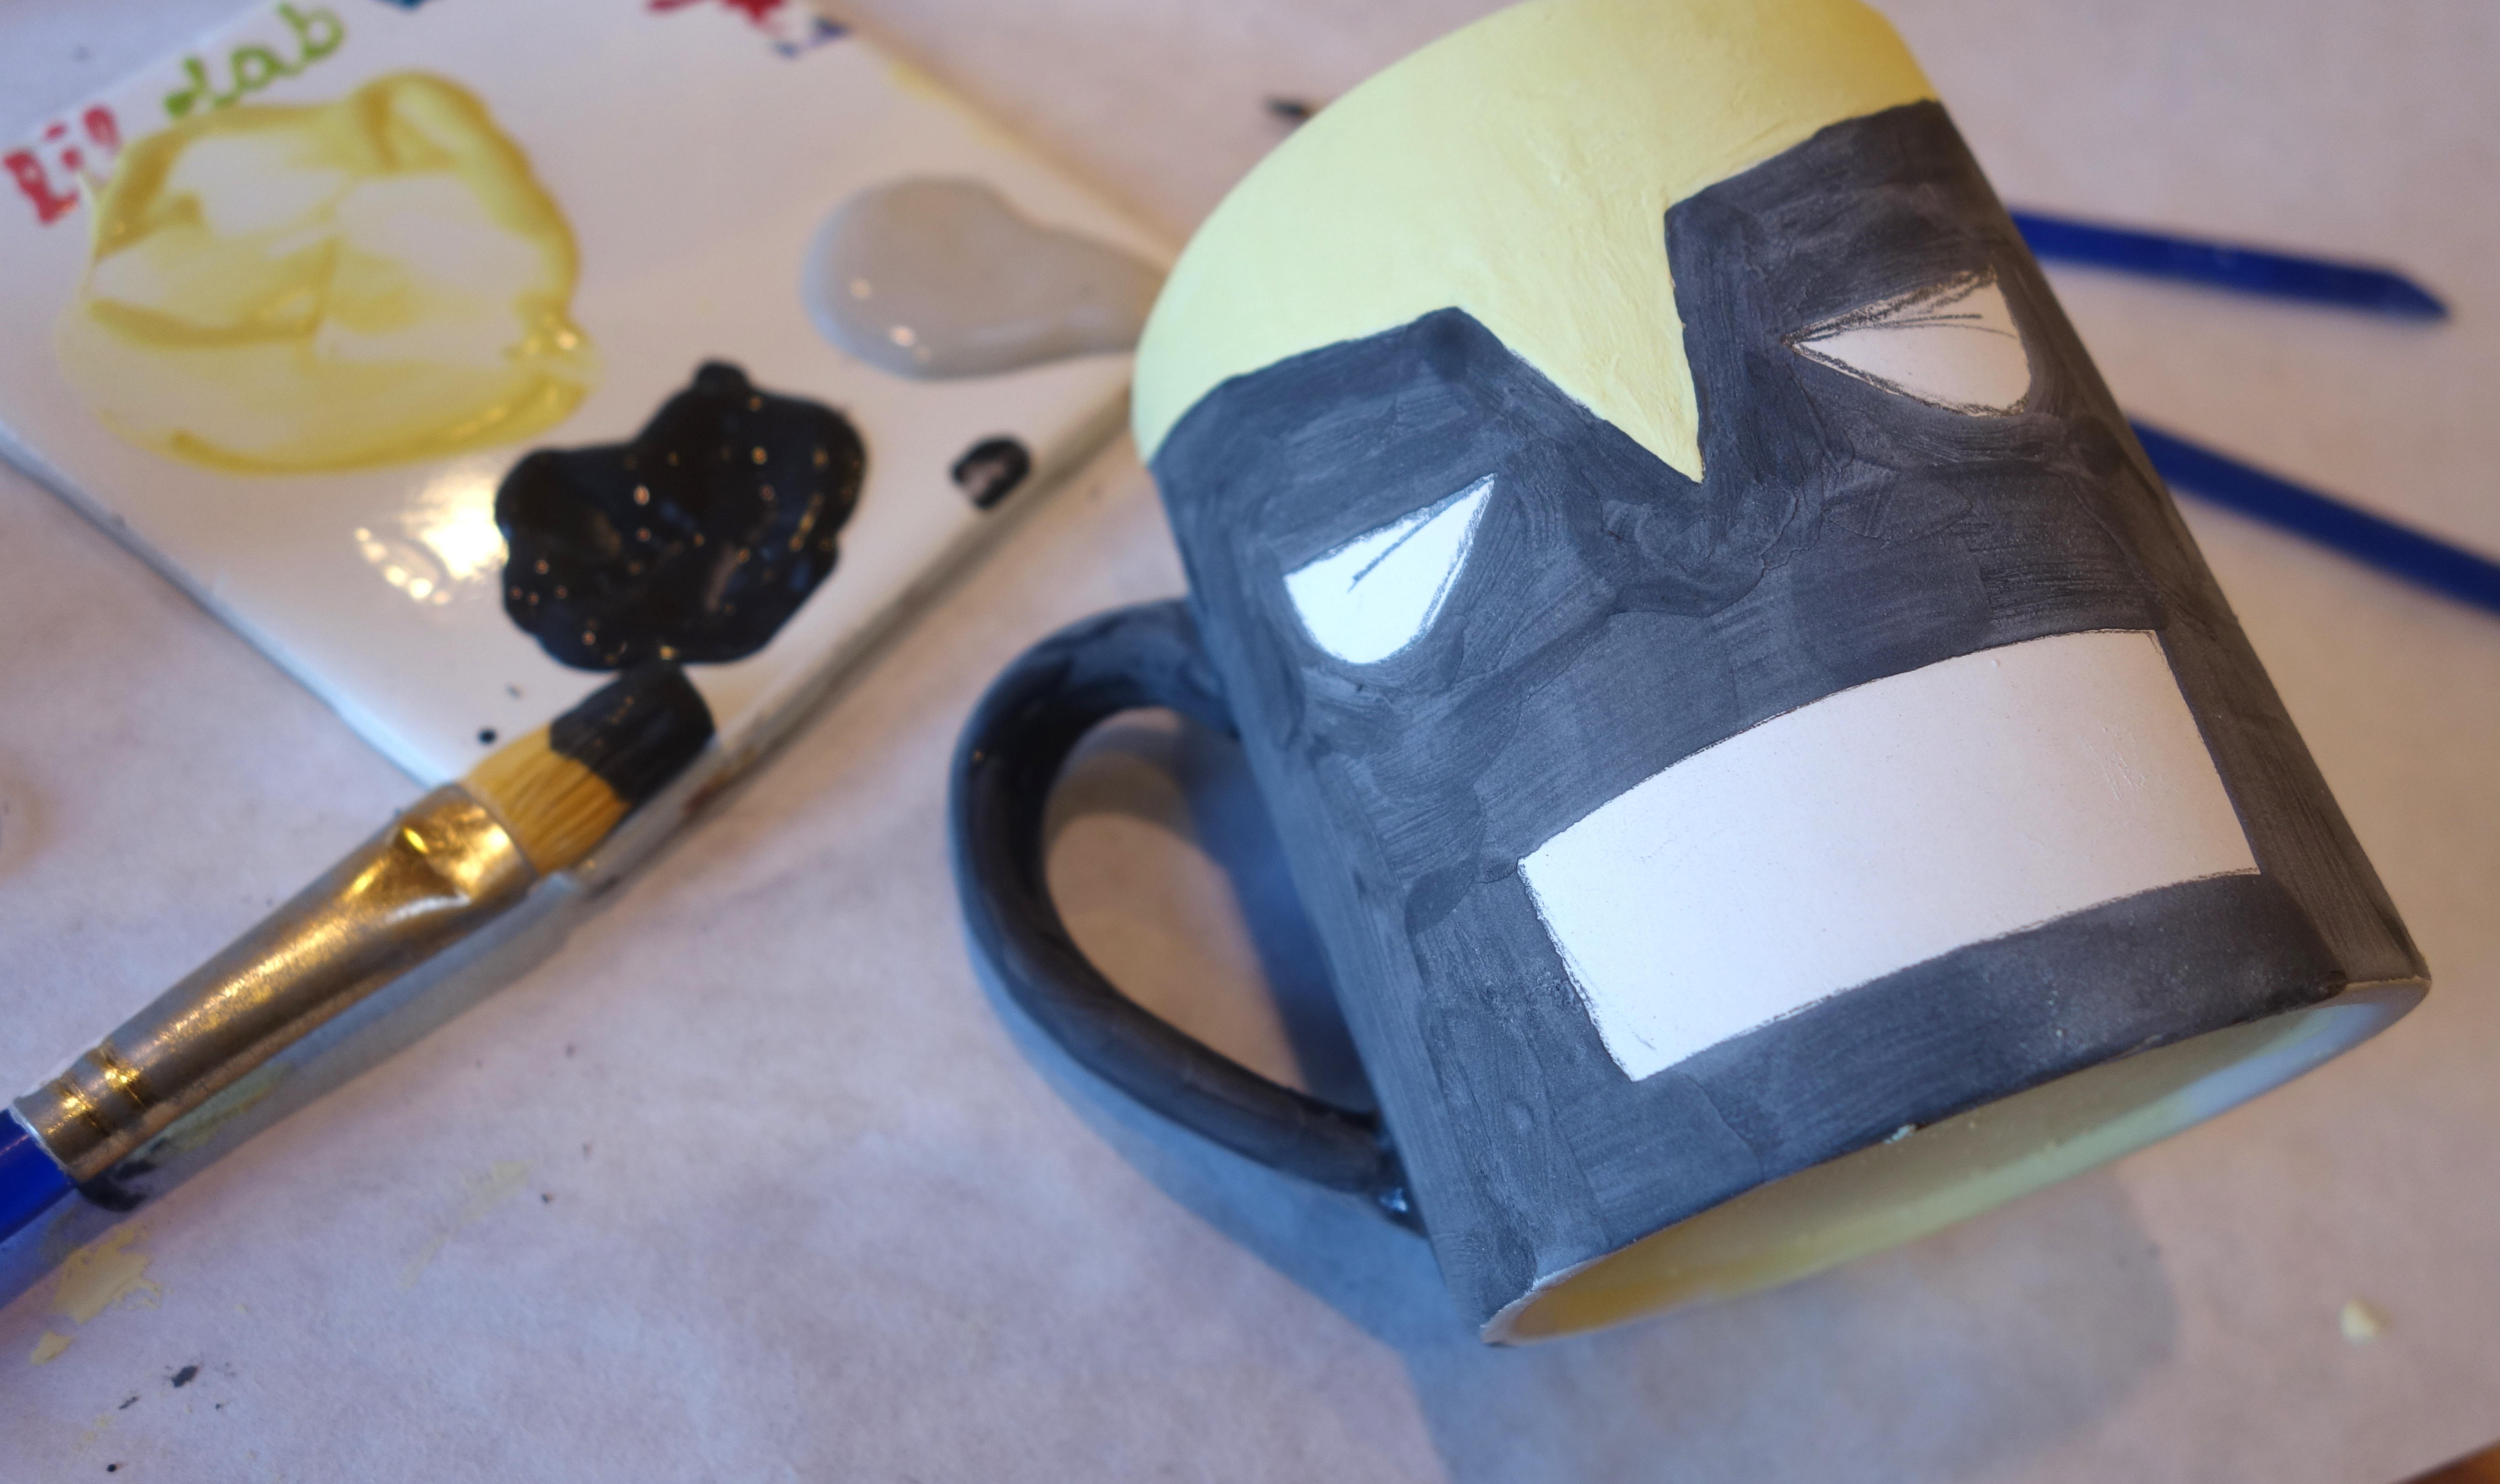 DIY Wolverine Mug - Paint in the black areas of Wolverine's mask.